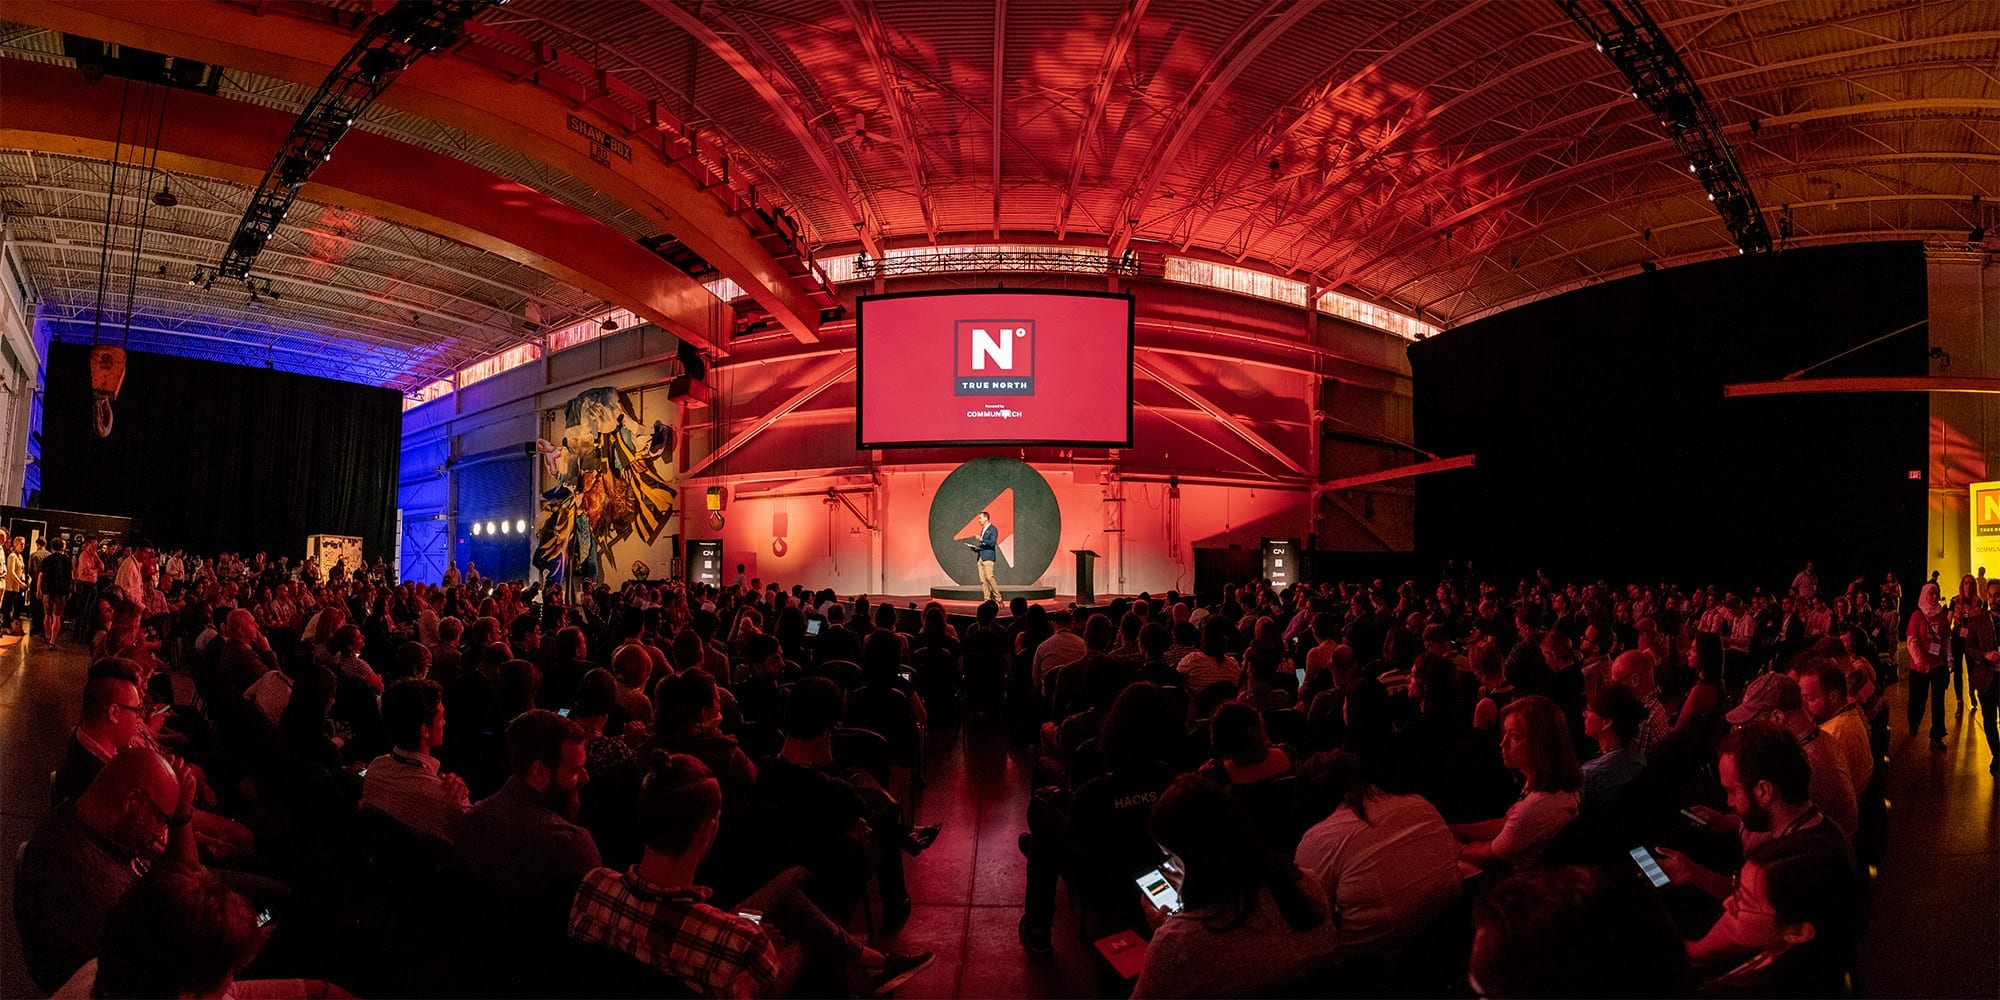 True North tech conference brings scaling startups and free thinkers to Waterloo Region